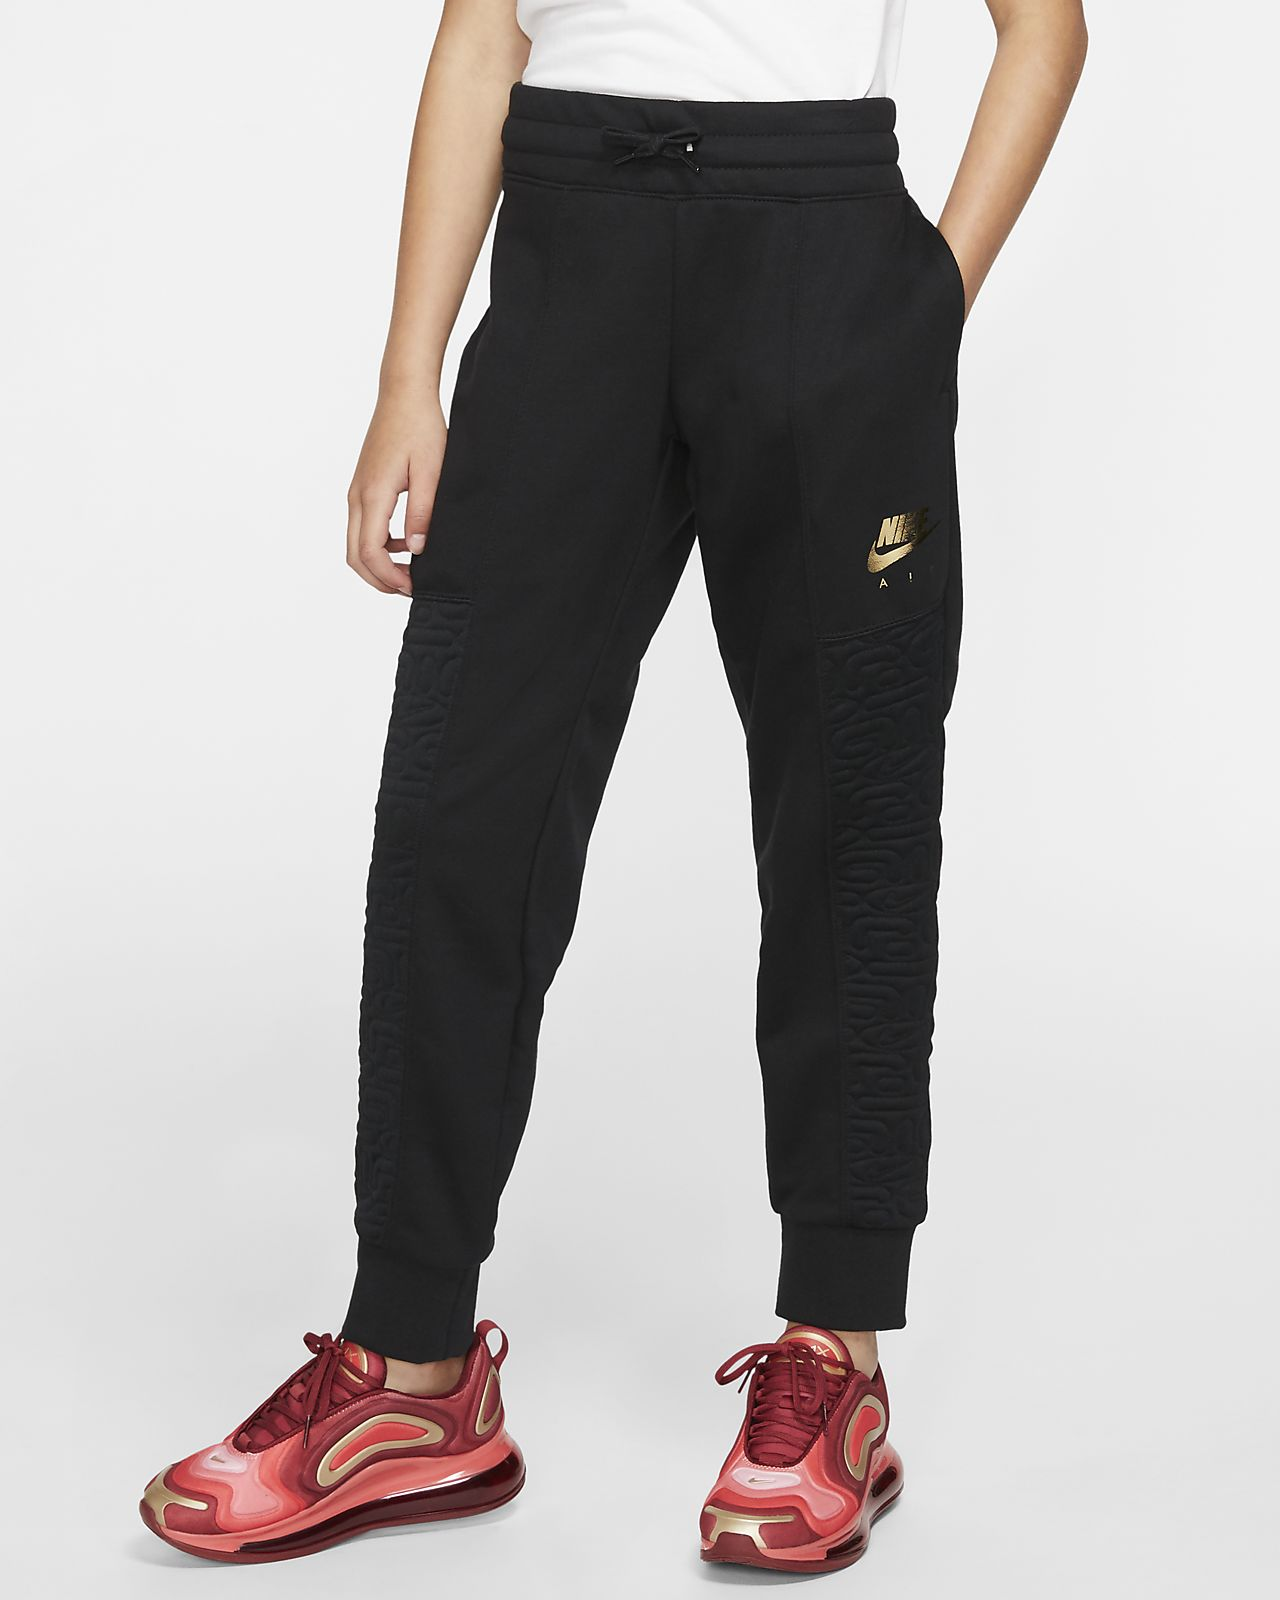 Nike Air Girls' Fleece Pants